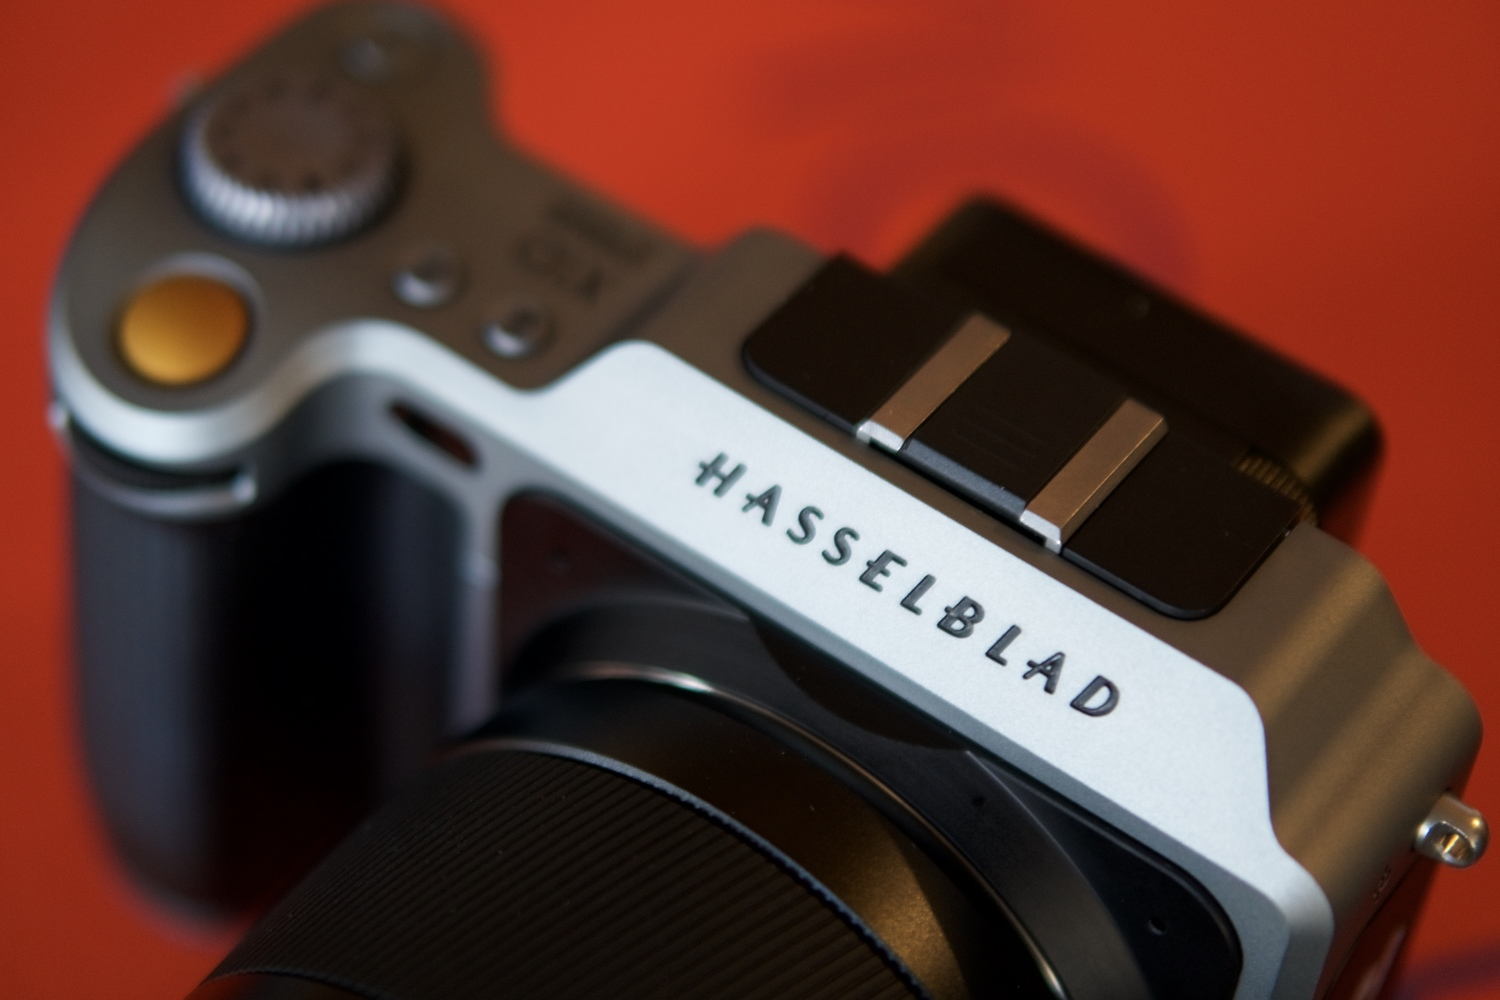 Hasselblad X1D: Is This the Camera that Will Save Hasselblad